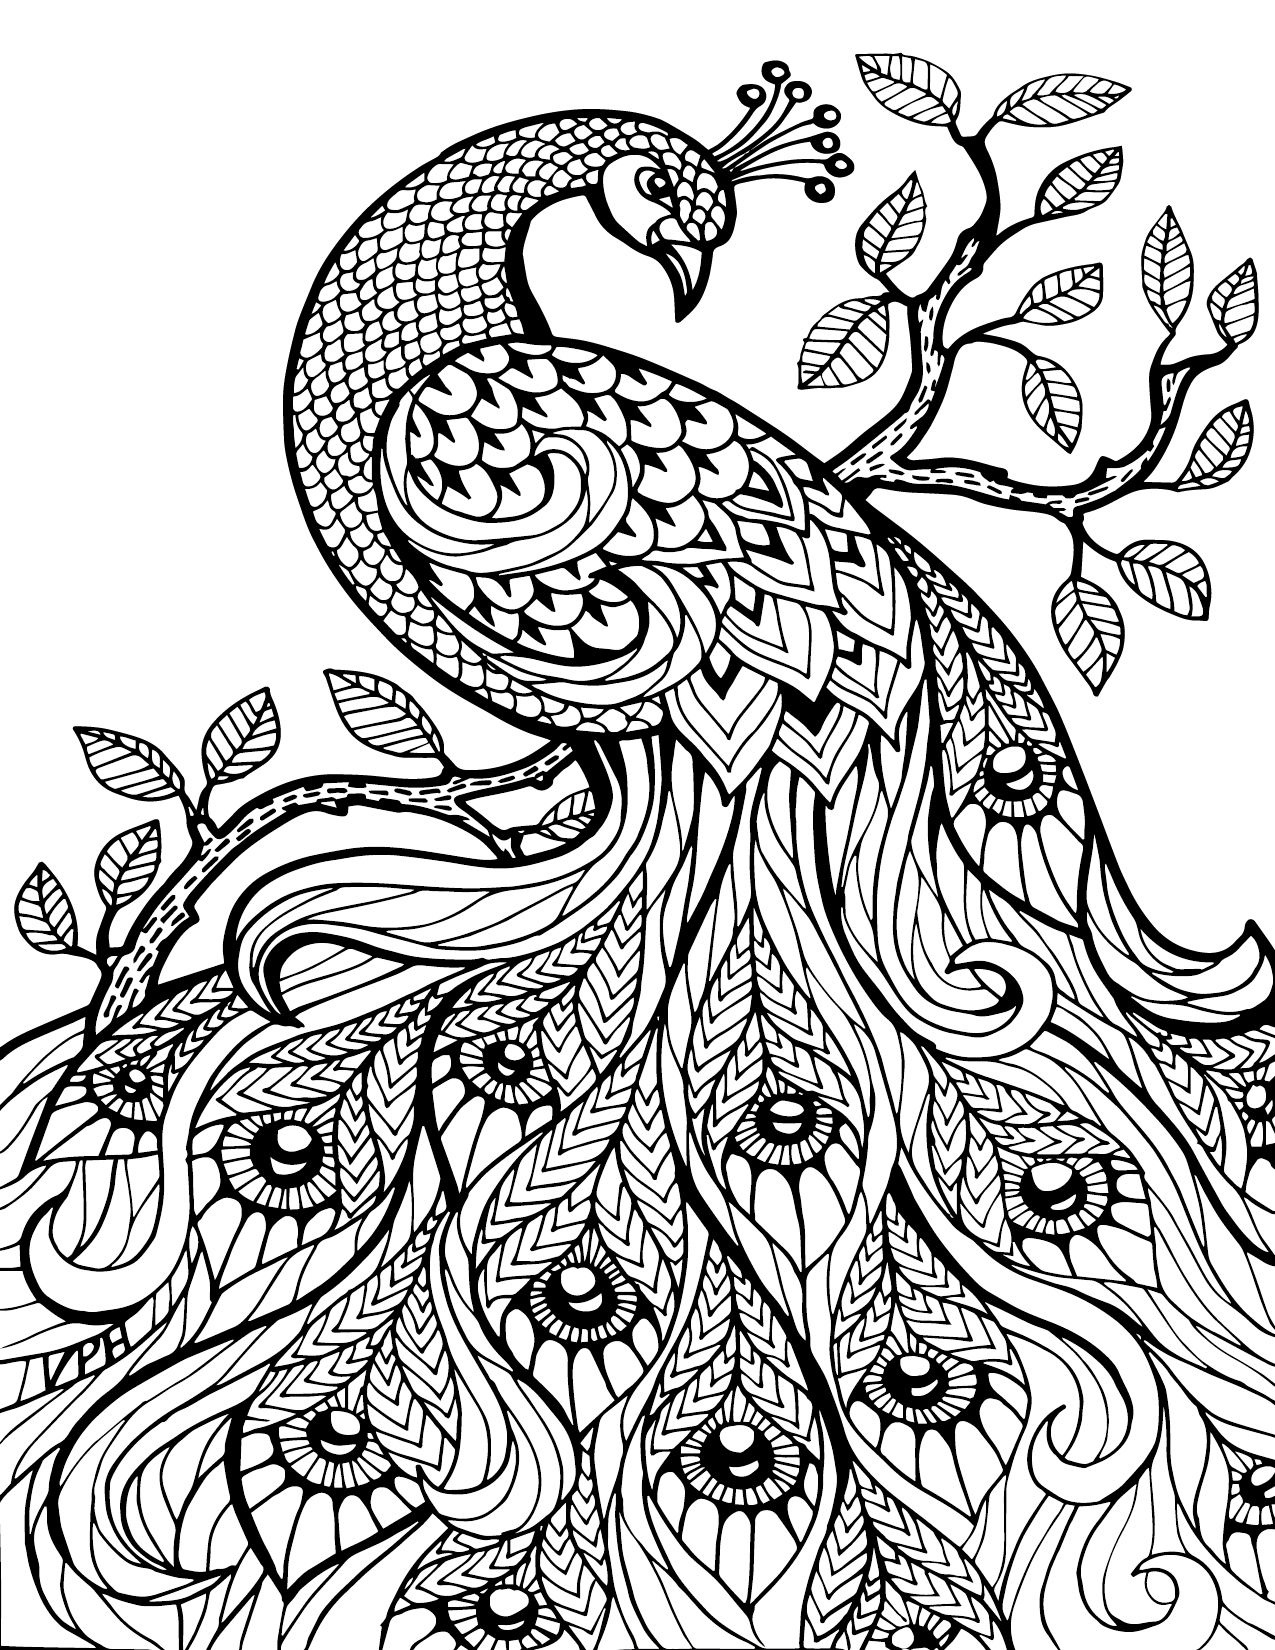 Free Printable Coloring Pages For Adults Only Image 36 Art - Free Printable Coloring Books For Adults